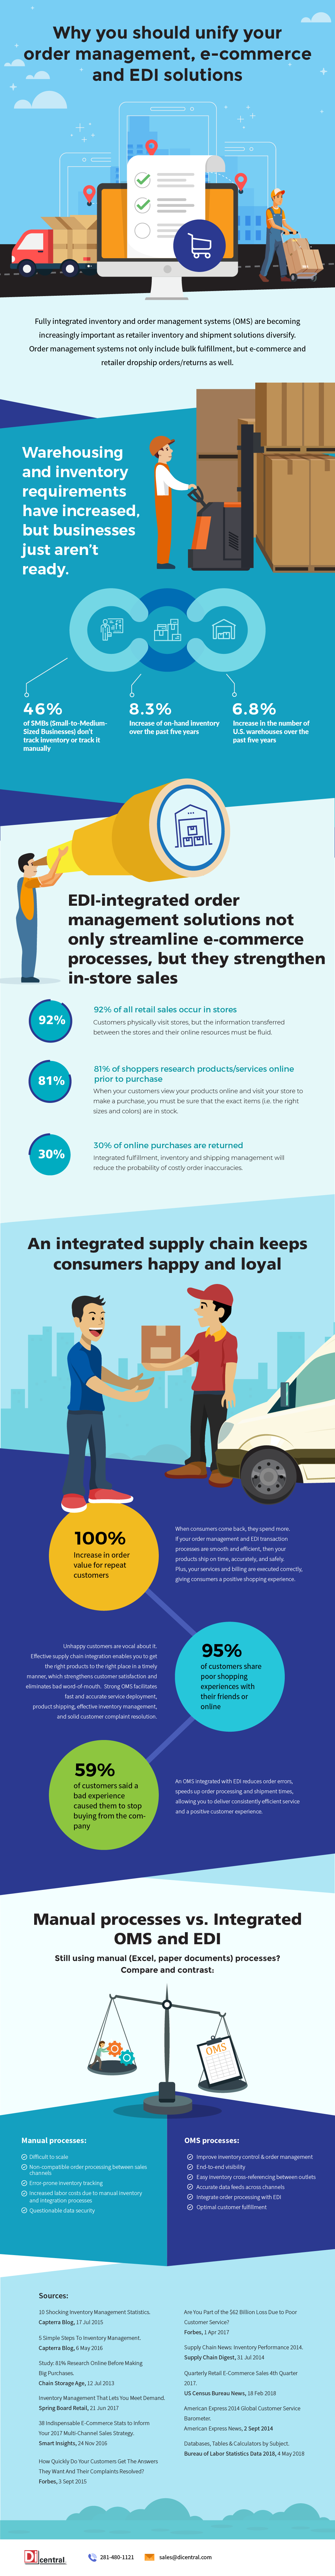 [Infographic] Unifying your Order Management, Ecommerce, and EDI Solutions